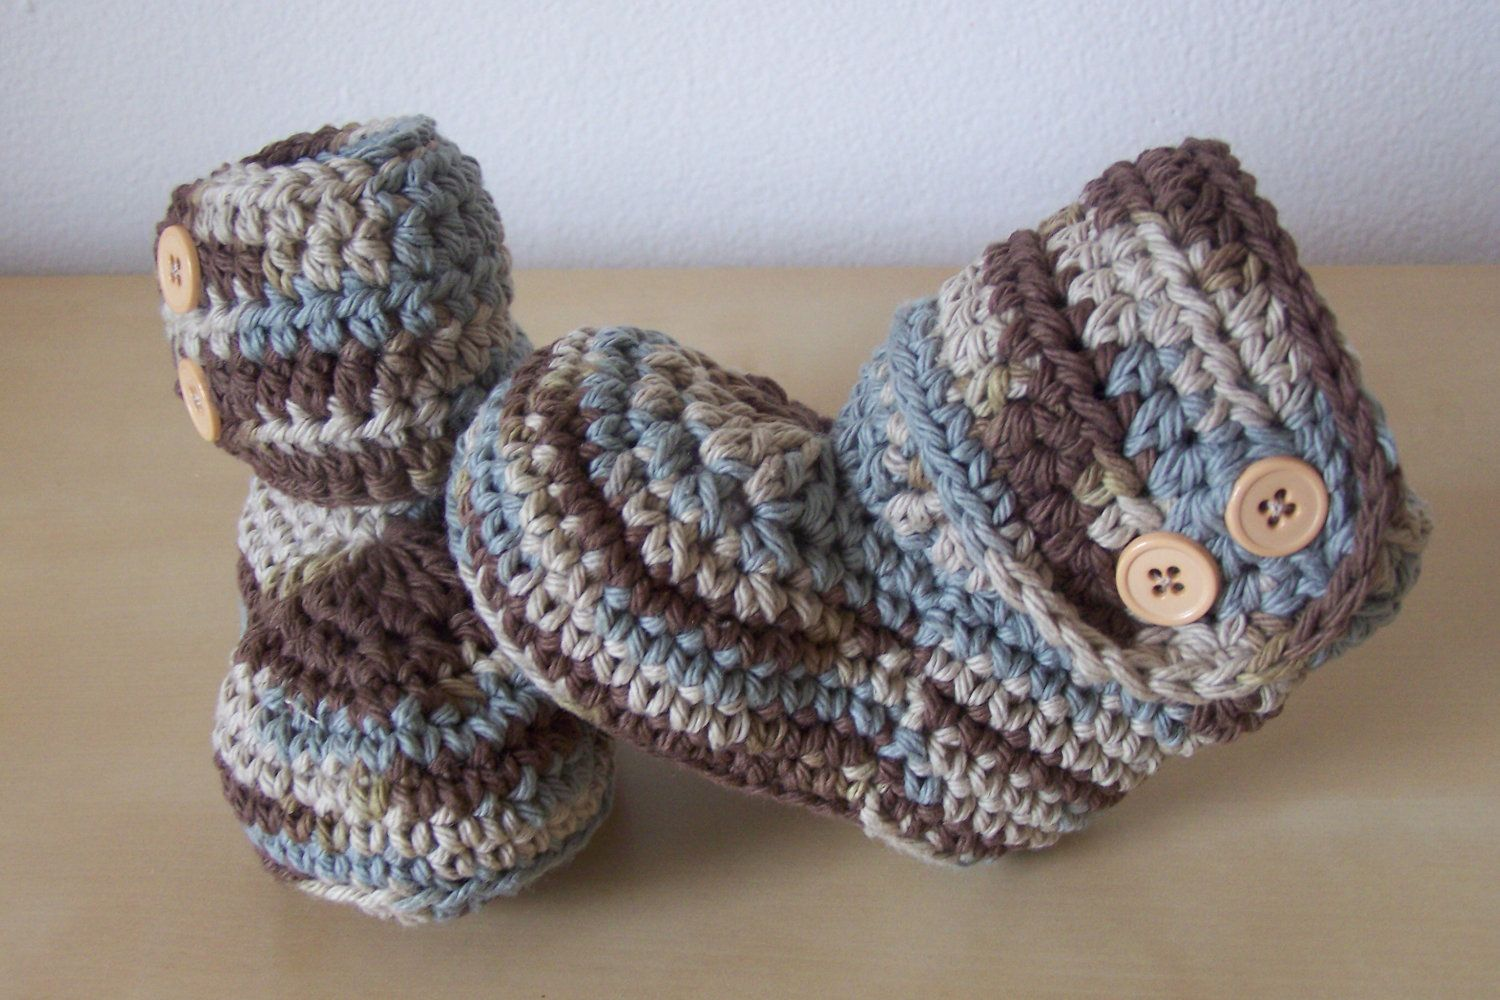 crochet baby boots, baby boy clothes | Baby baby baby oh | Pinterest